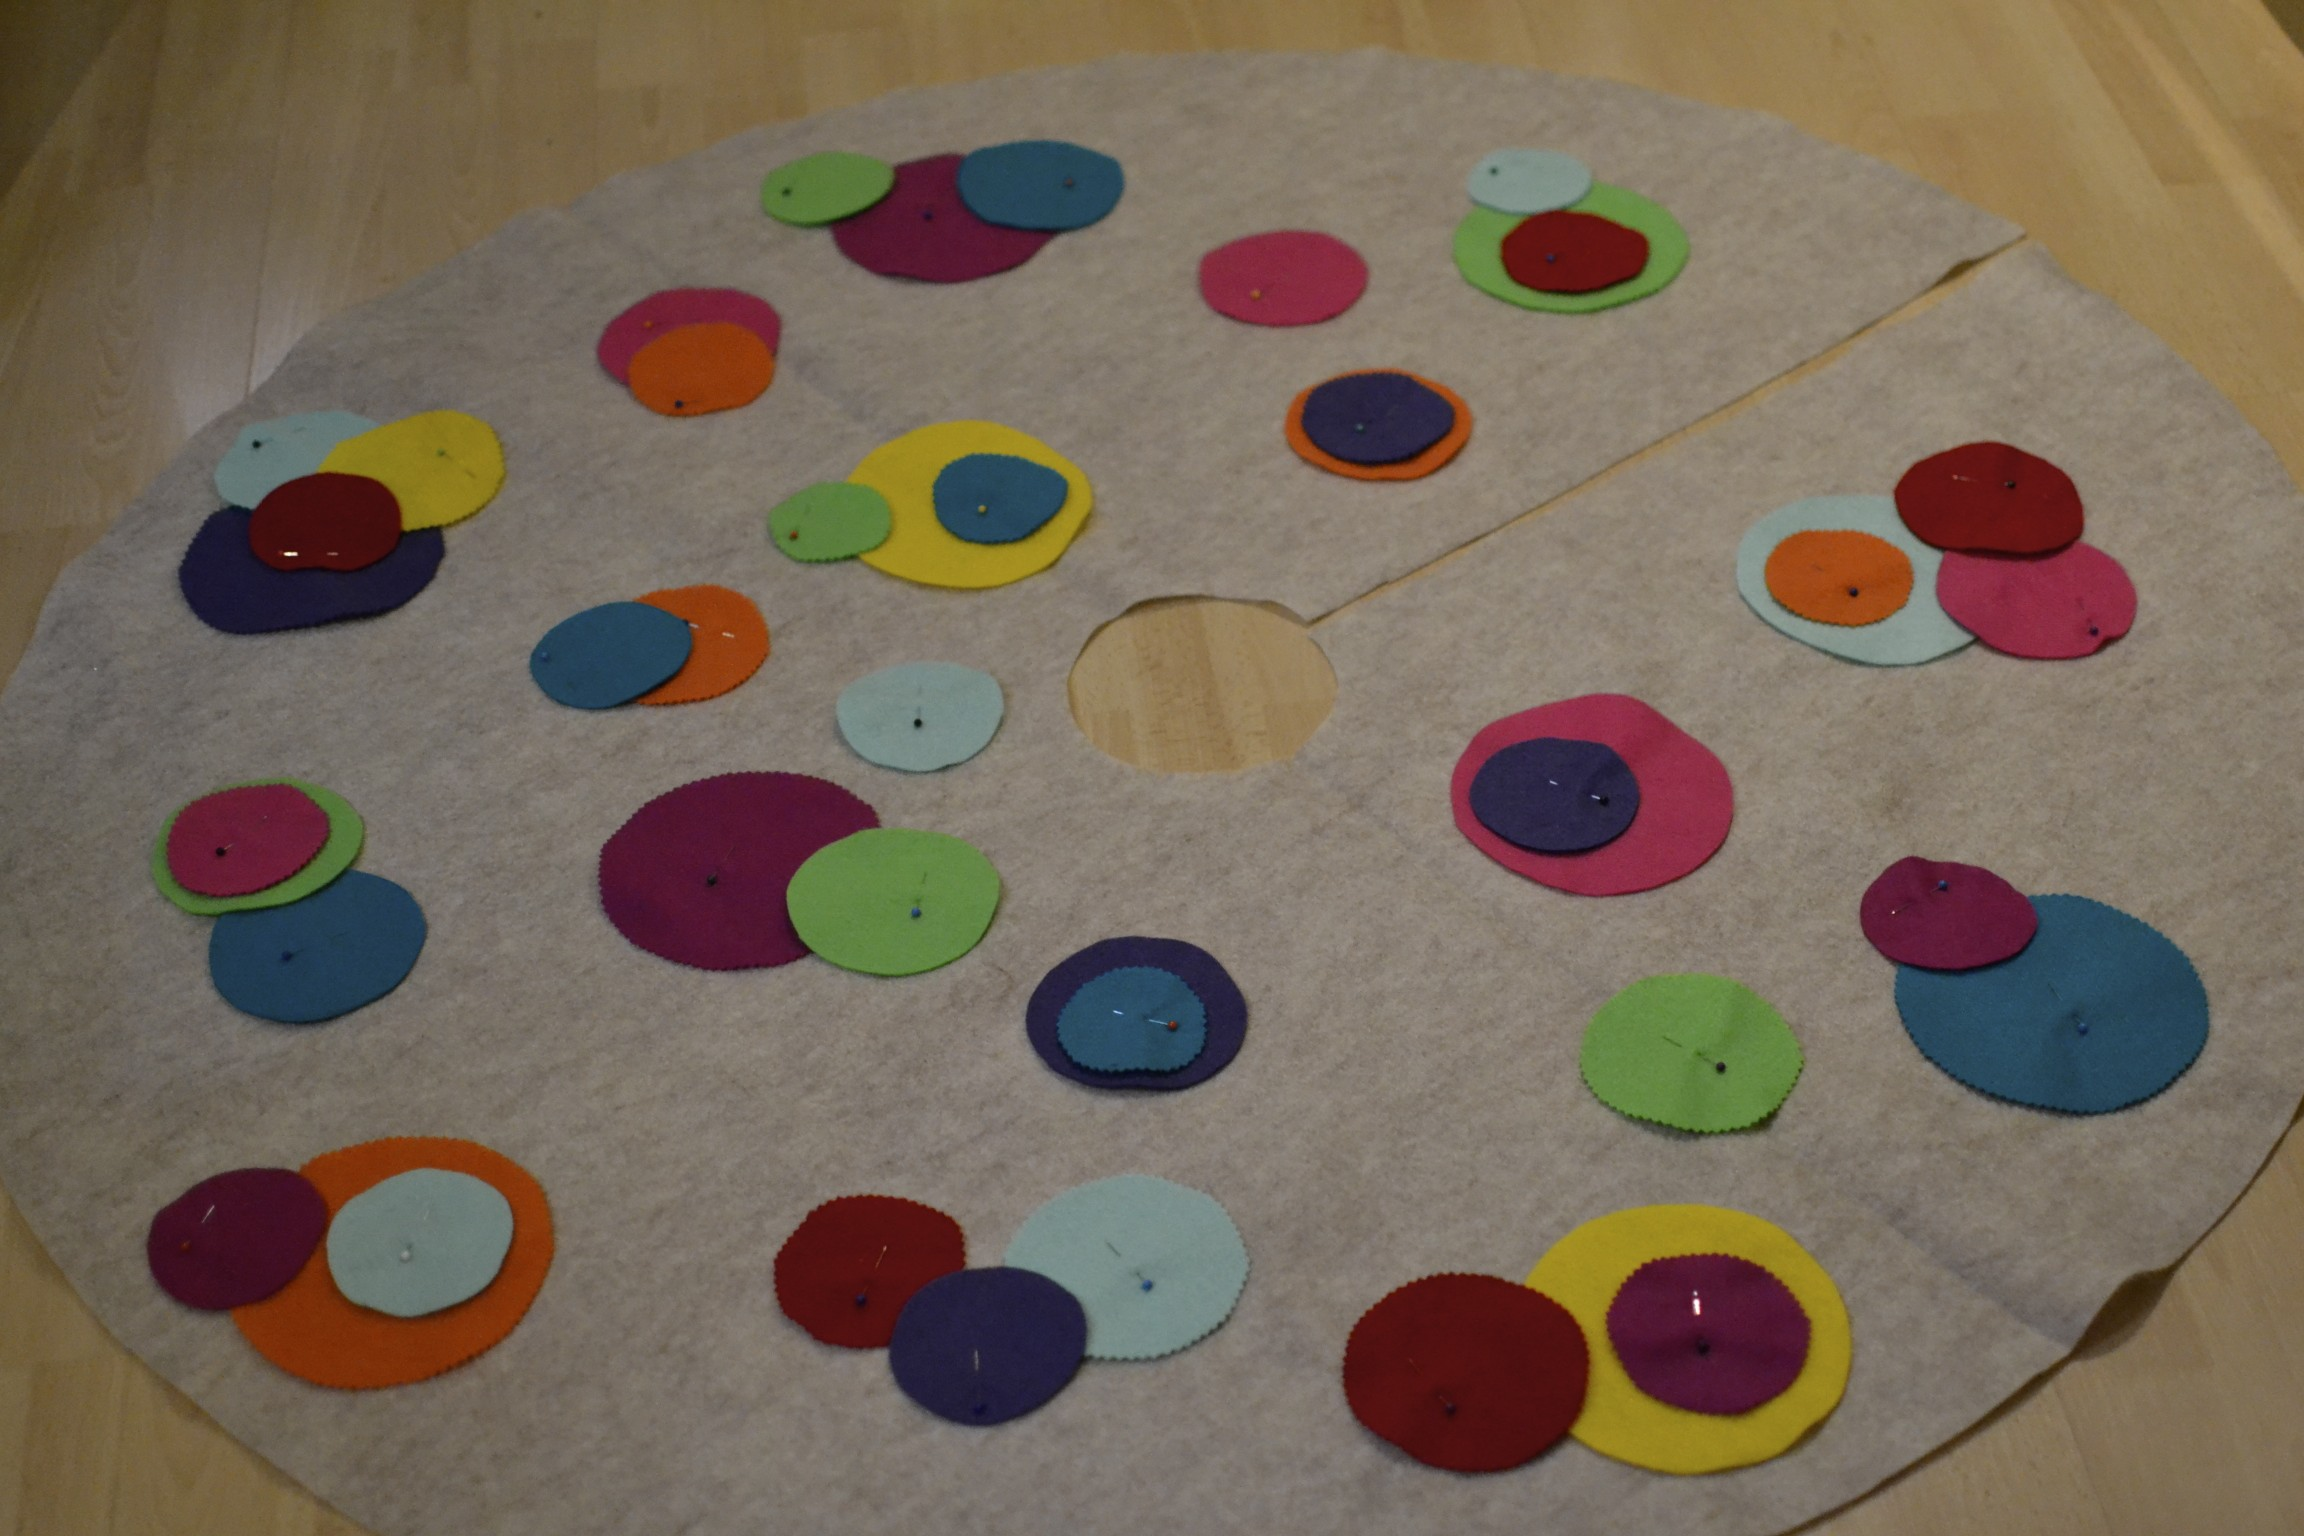 """i used an oatmeal felt for the base and actually just used my old tree skirt to trace the circle. this is a 48"""" diameter circle so, purchasing 1 1/4 yards of felt would do the trick. (this skirt turned out to be pretty large. you could definitely do with using 1 yard of fabric and making the skirt 36"""" in diameter.) then i used 3 sizes of cups to trace circles on sheets of various felt colors. i cut some of the circles out with regular scissors and others with pinking shears to provide different textures."""